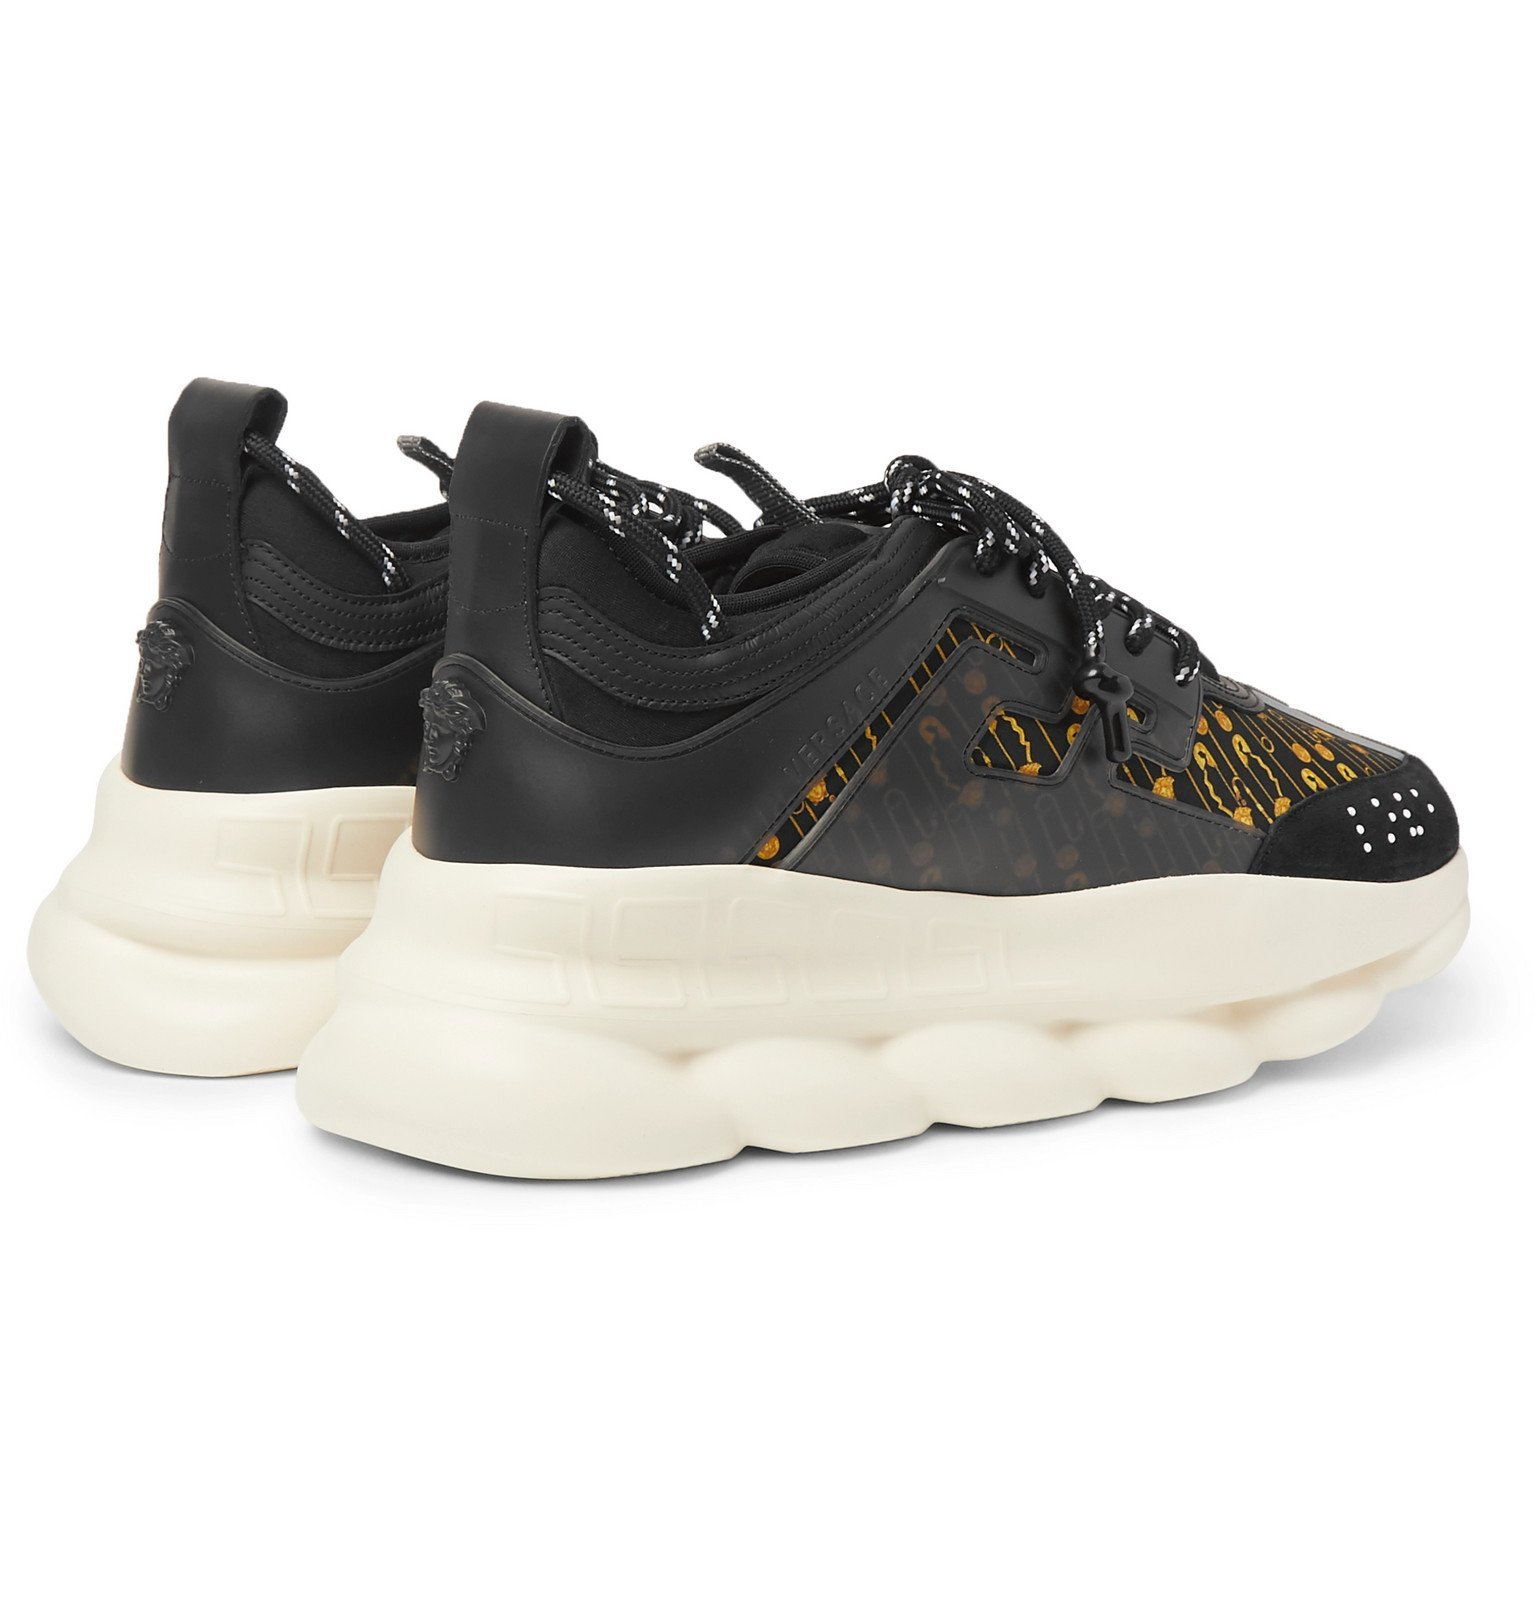 Versace - Chain Reaction Panelled Shell, Rubber and Suede Sneakers - Black